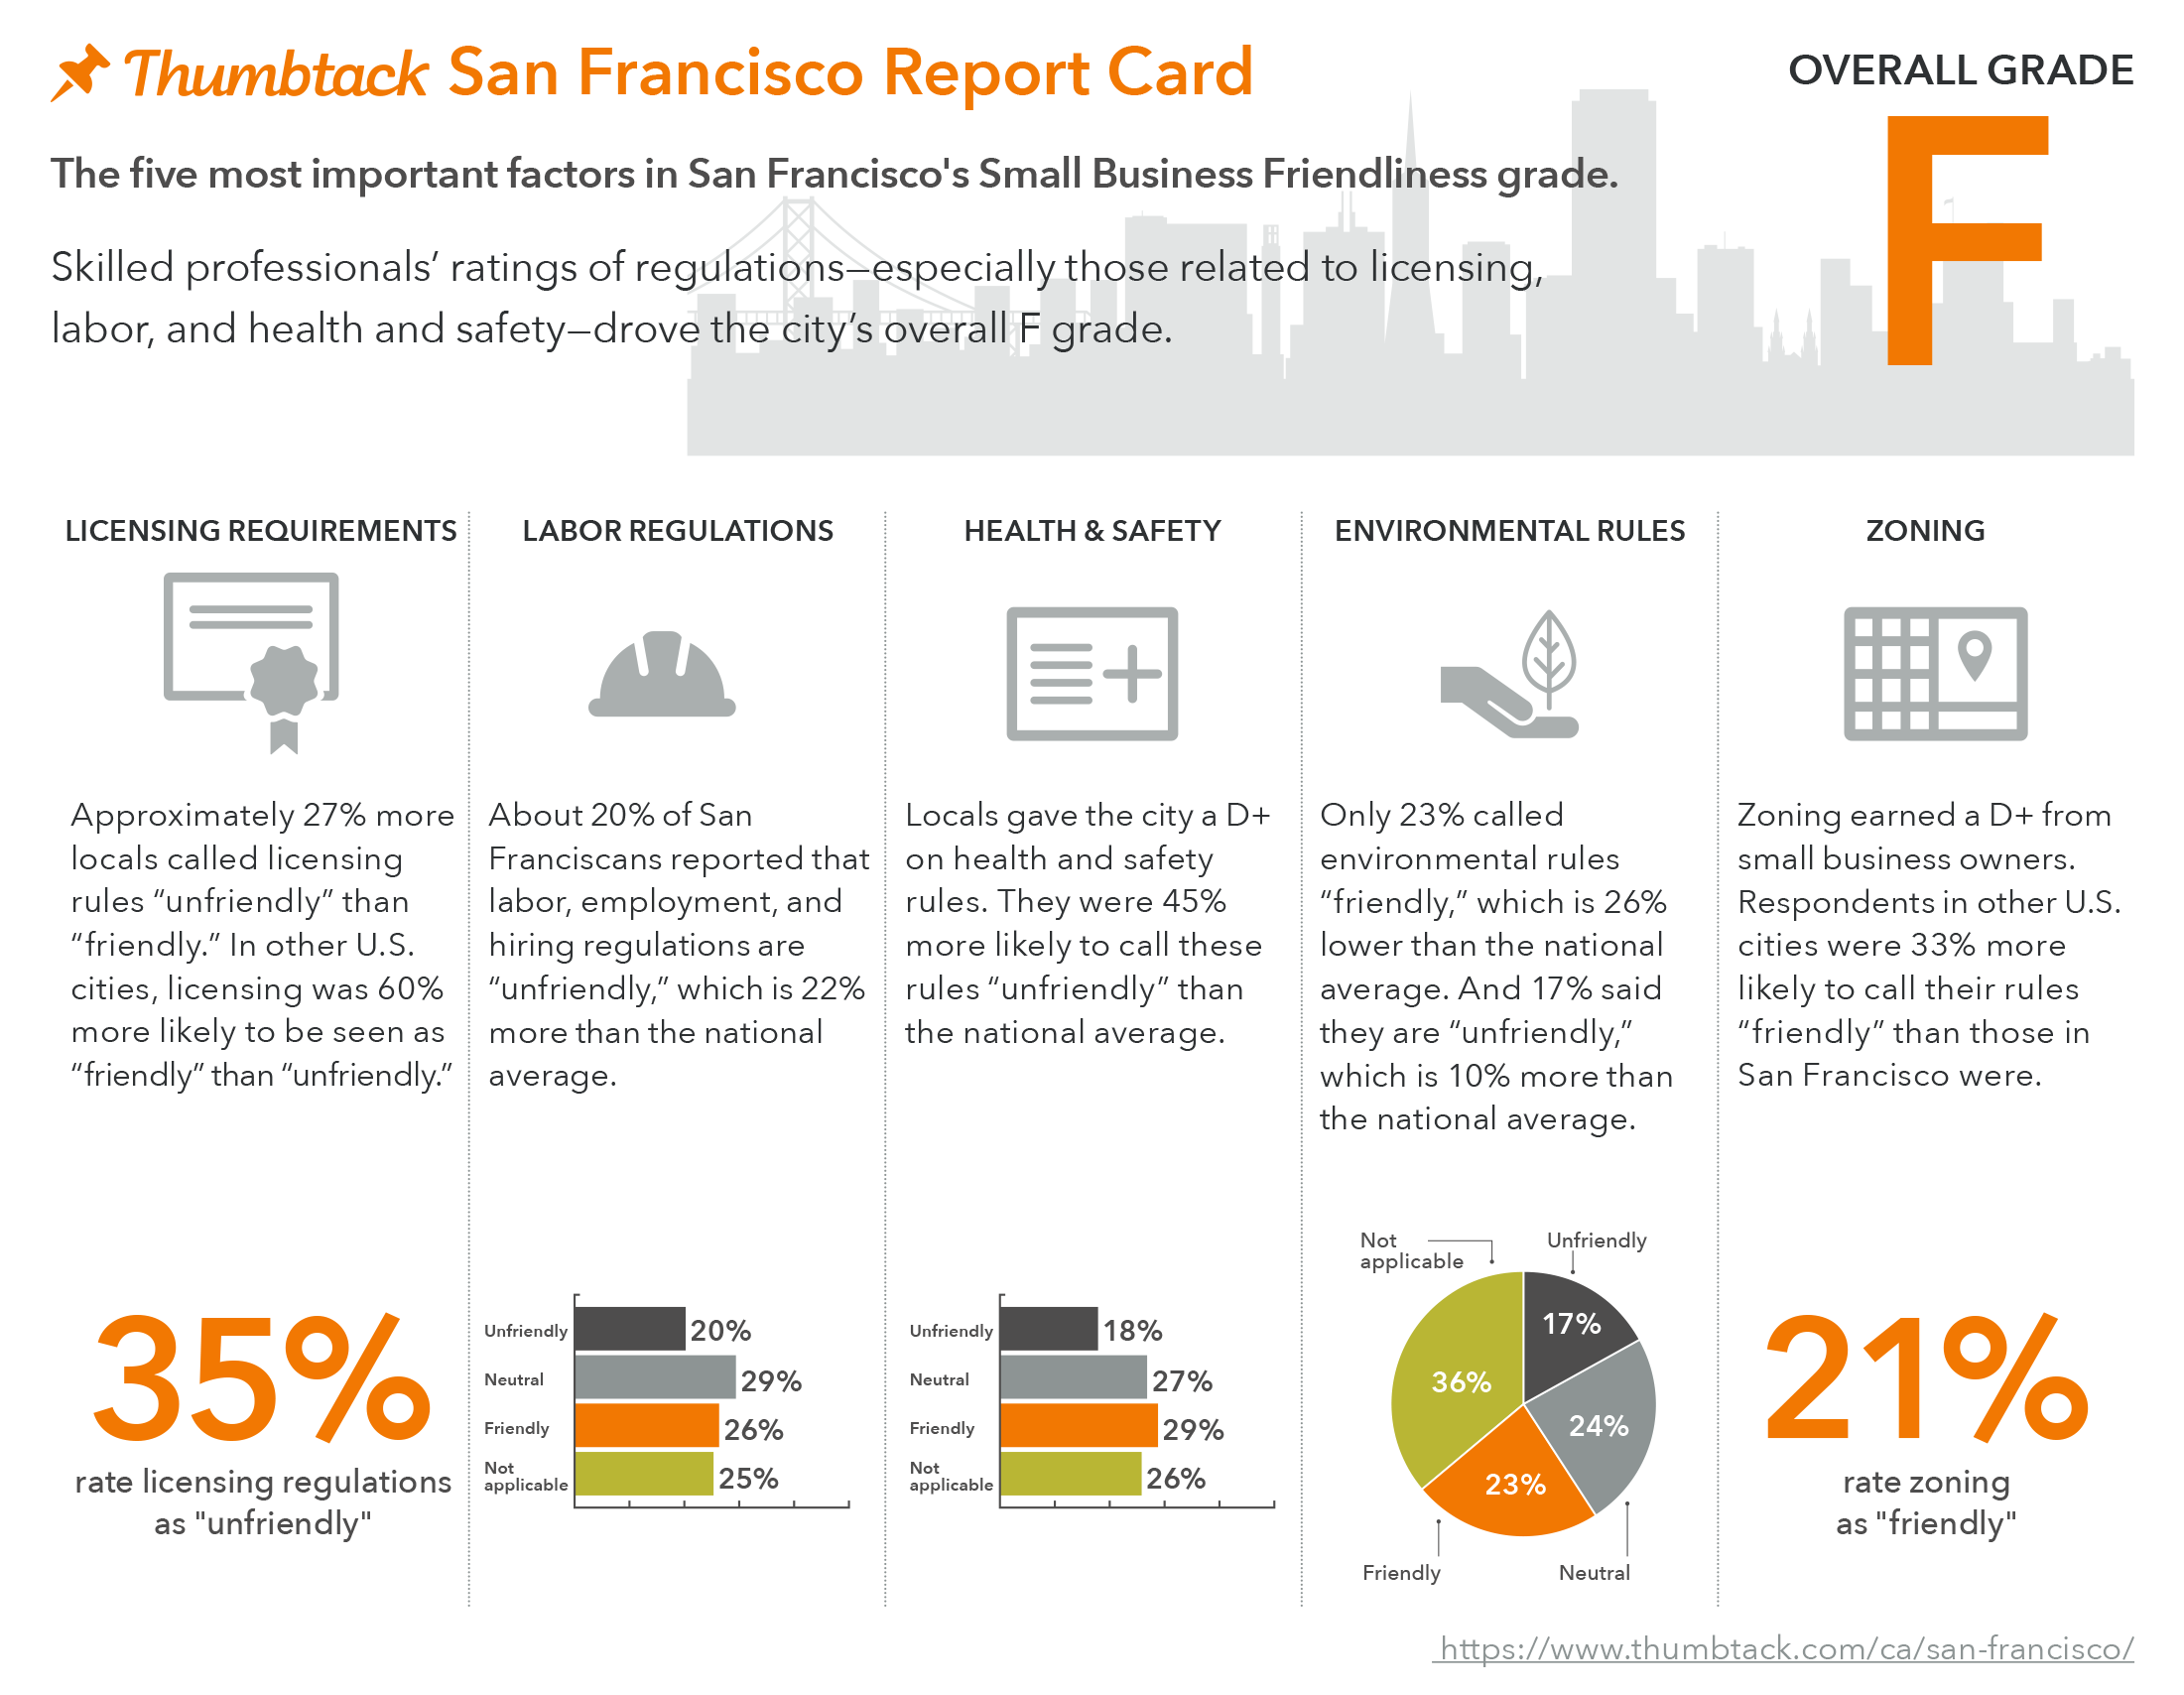 San Francisco Report Card_Thumbtack Small Business Friendliness 2016 (1)